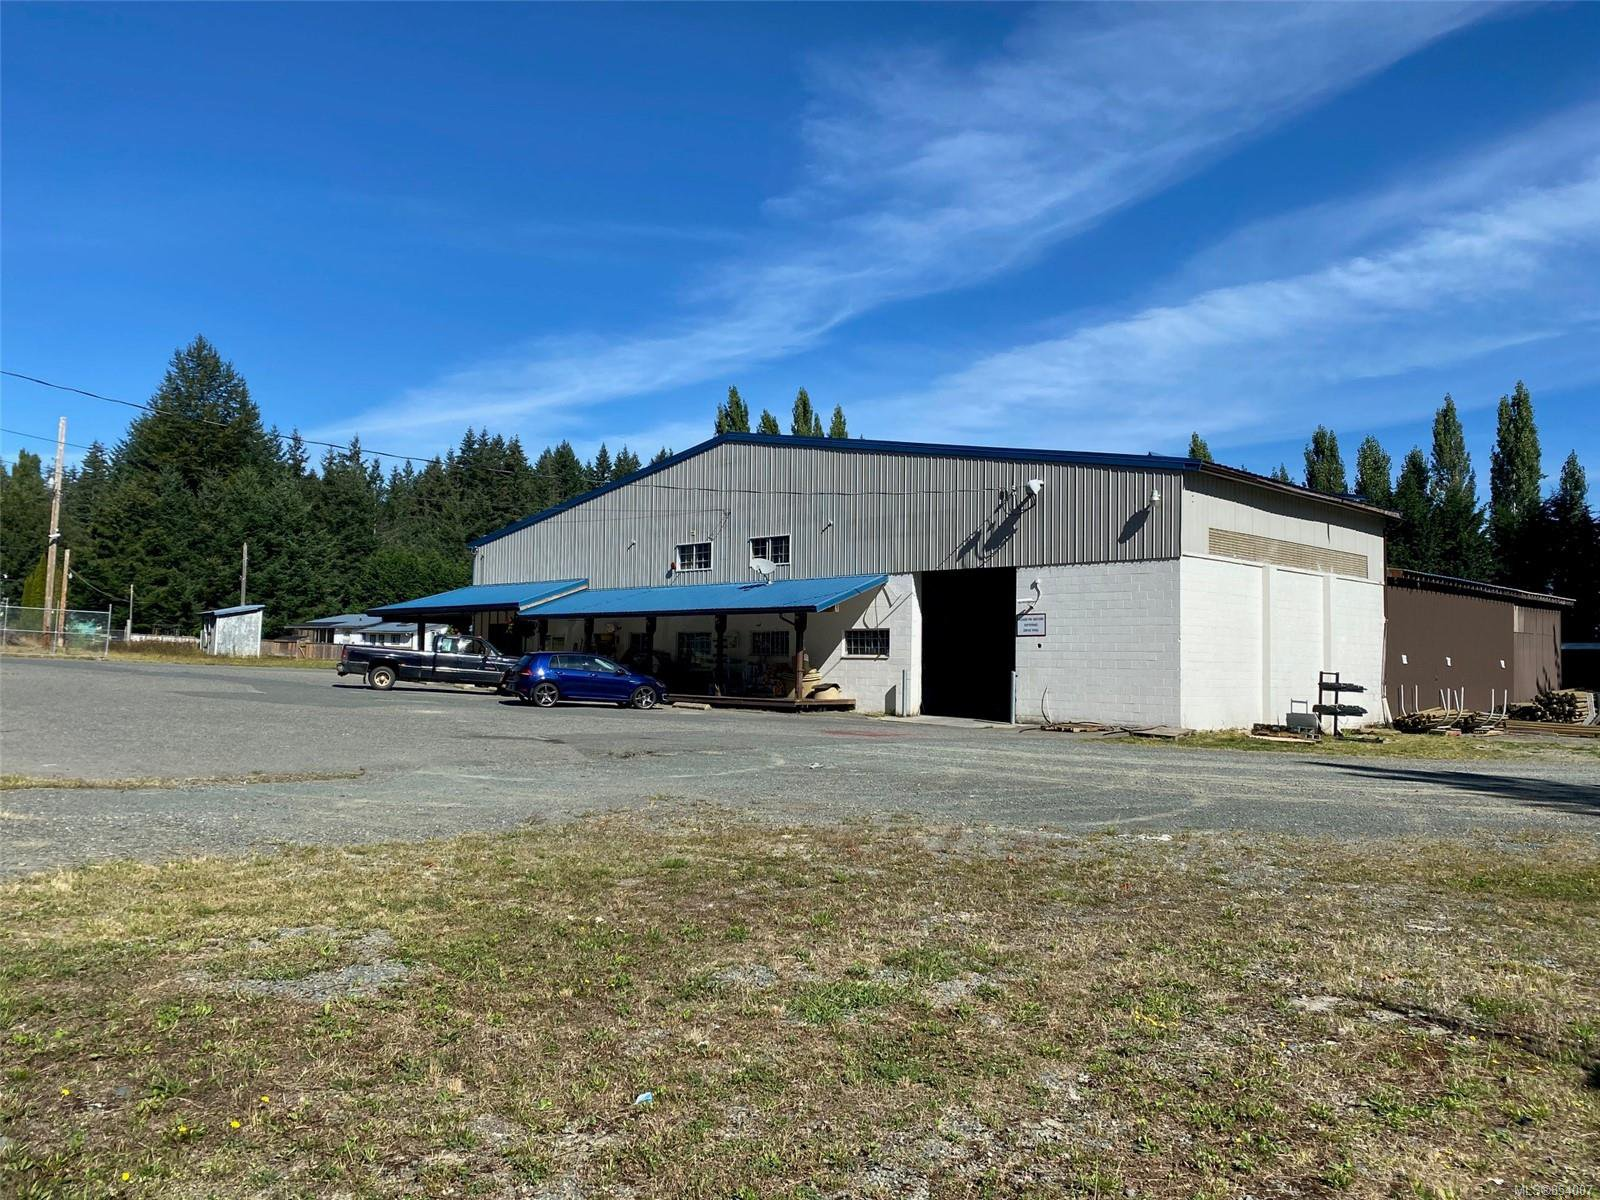 Main Photo: 7648 N Island Hwy in : CV Merville Black Creek Mixed Use for sale (Comox Valley)  : MLS®# 854007